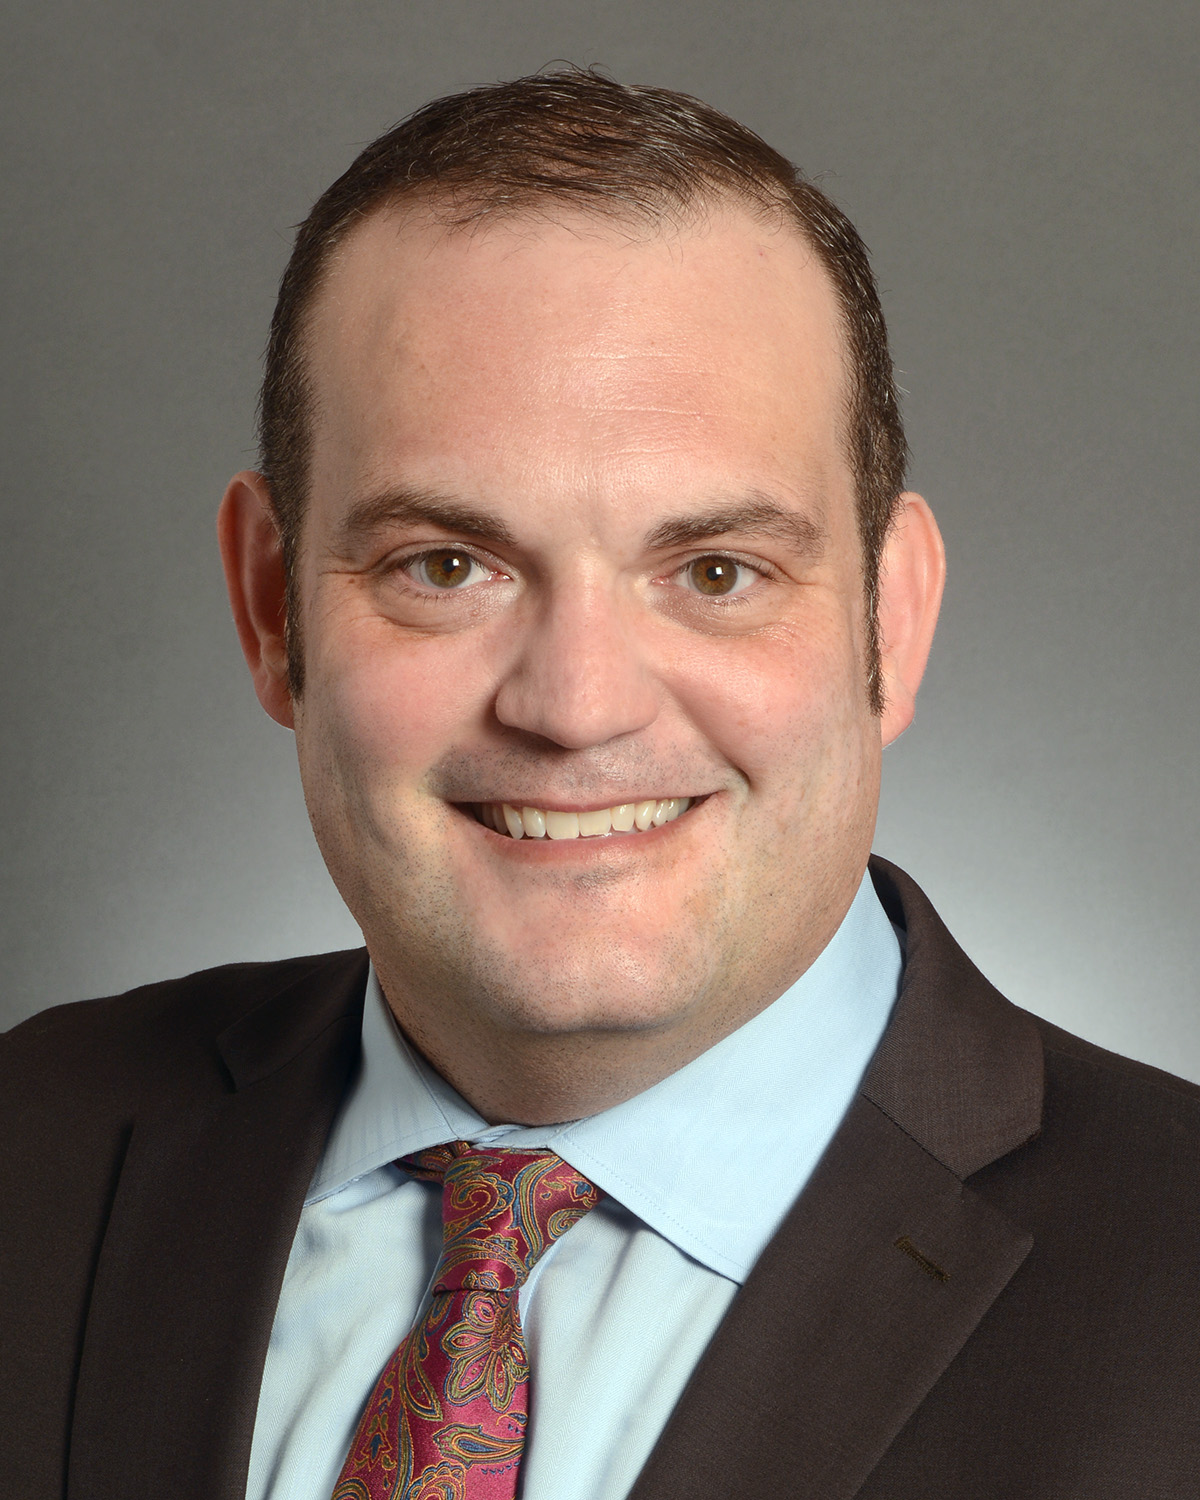 Photo of Senator Schoen